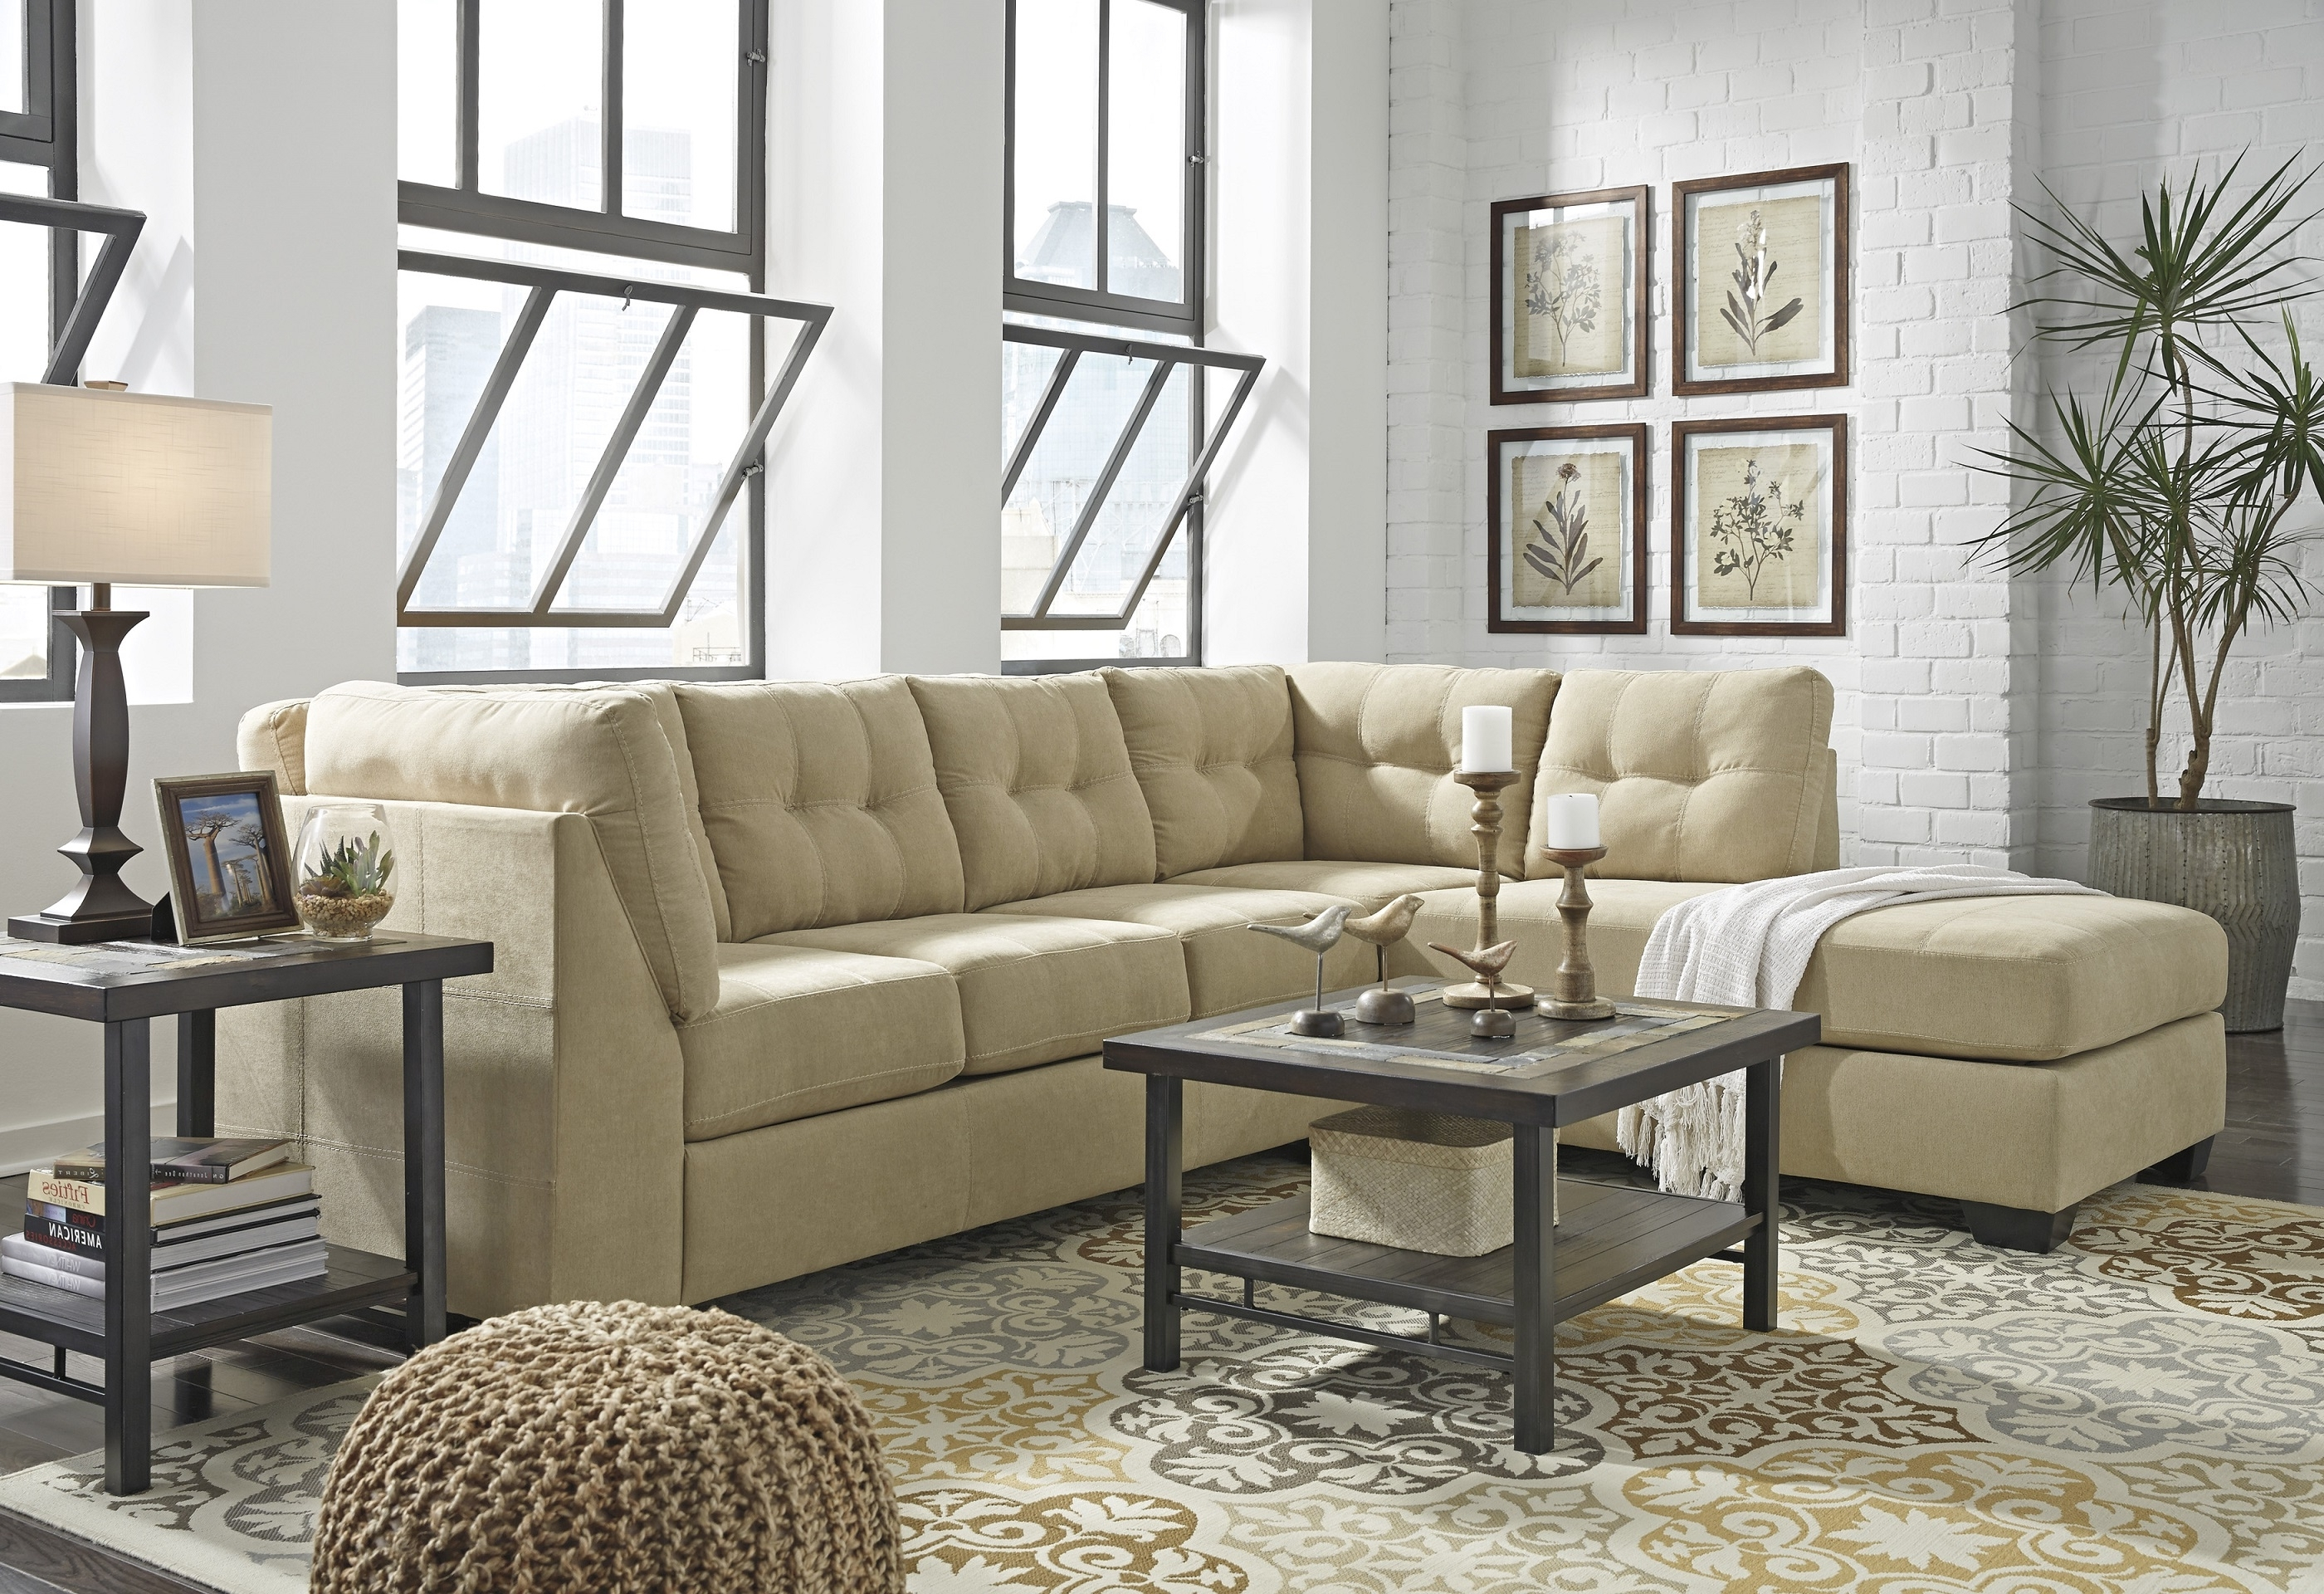 Maier Sofa Sectional 45203 16. Cocoa Colored Upholstery (View 16 of 20)